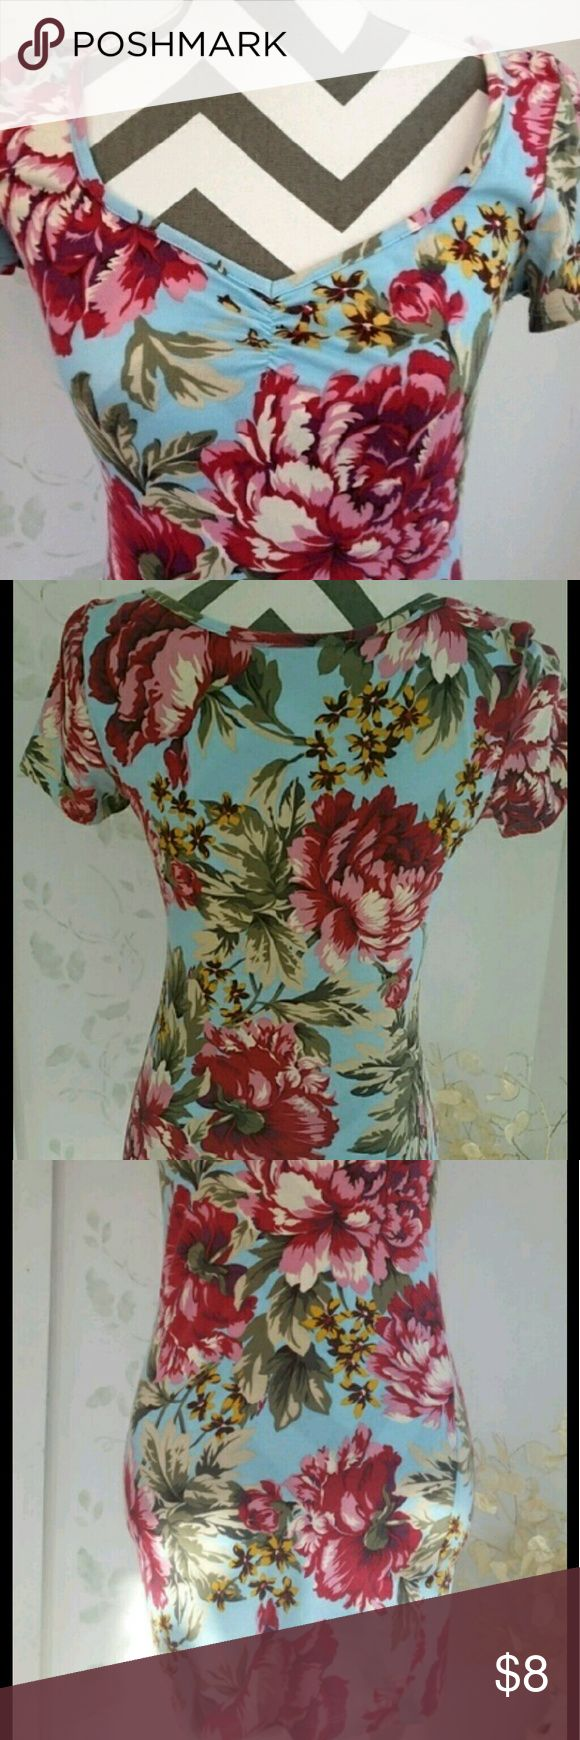 Floral Bodycon Dress forever21 bodycon style, with cute neckline. Very short and cute. Floral, short sleeves, size small. Slightly ruched in the front. No flaws. Forever 21 Dresses Mini